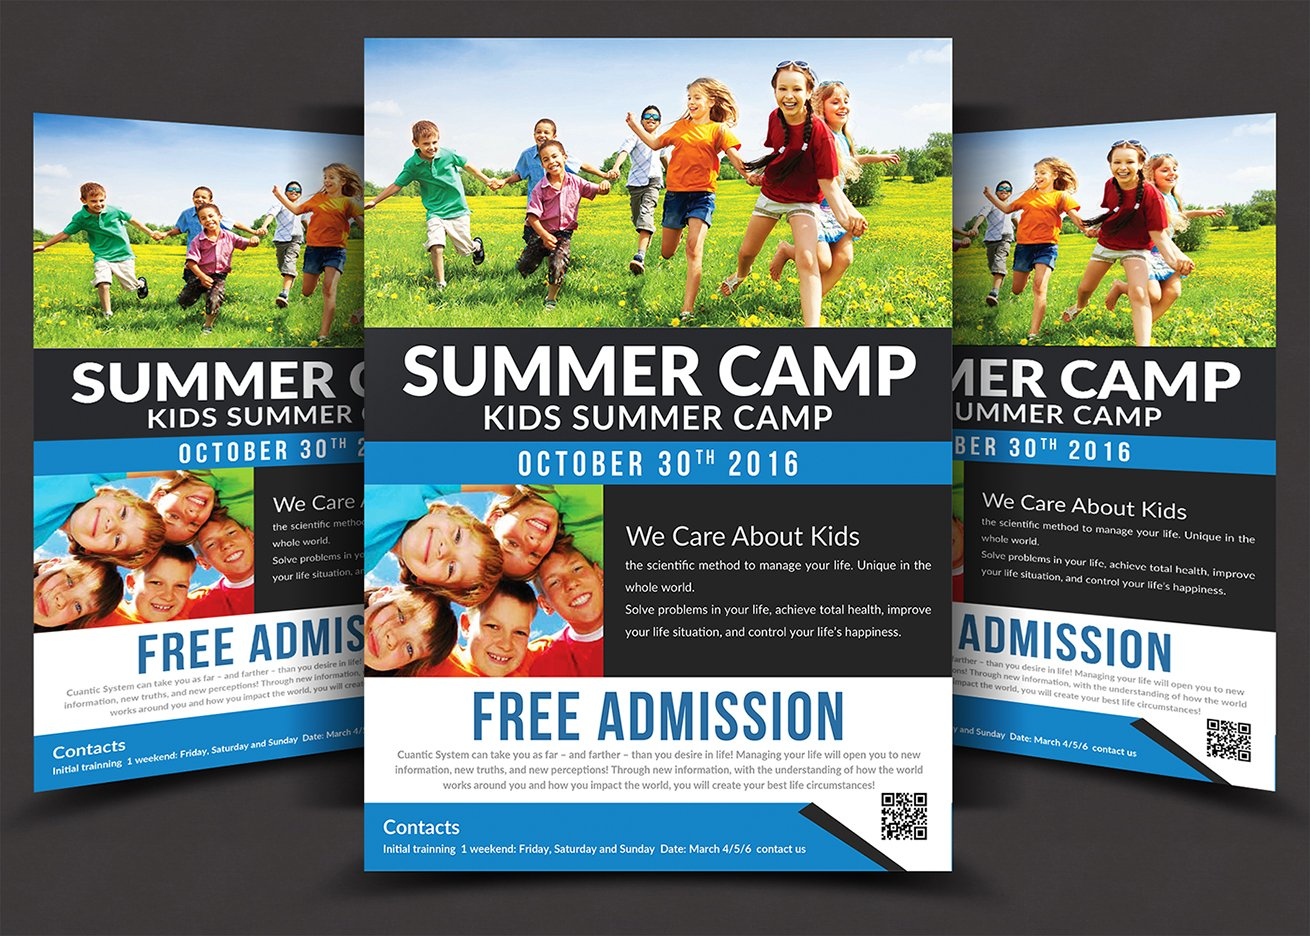 Kids Summer Camp Flyer Templates Flyer Templates Creative Market - Summer camp brochure template